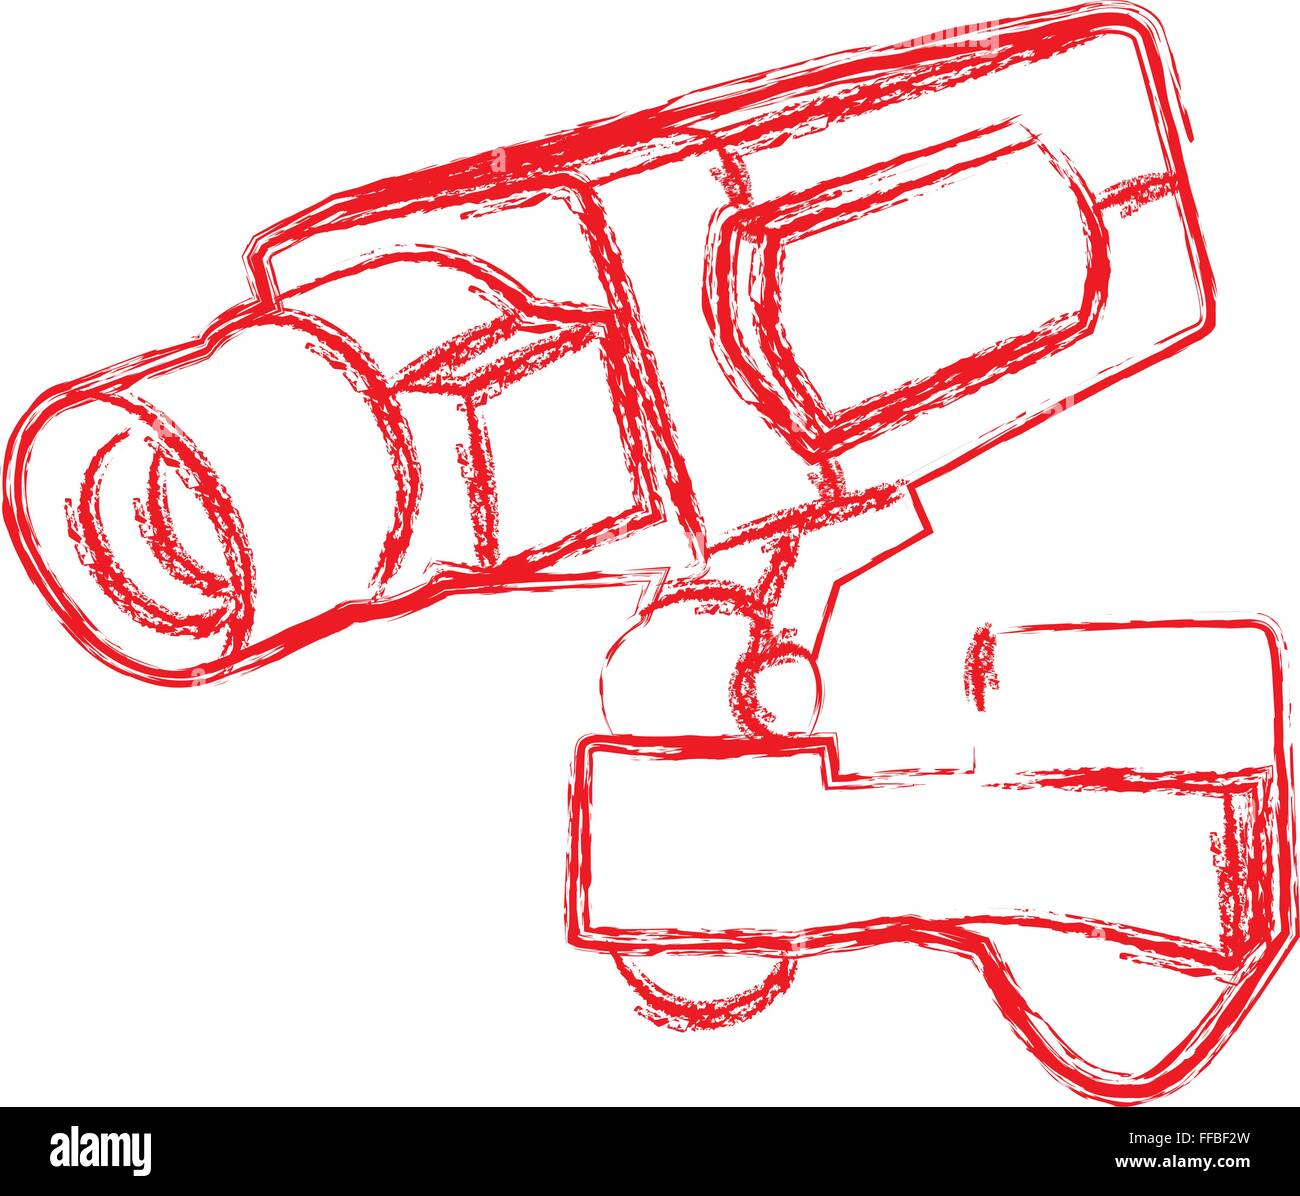 Red and White Surveillance Camera (CCTV) Warning Sign. Vector illustration - Stock Image